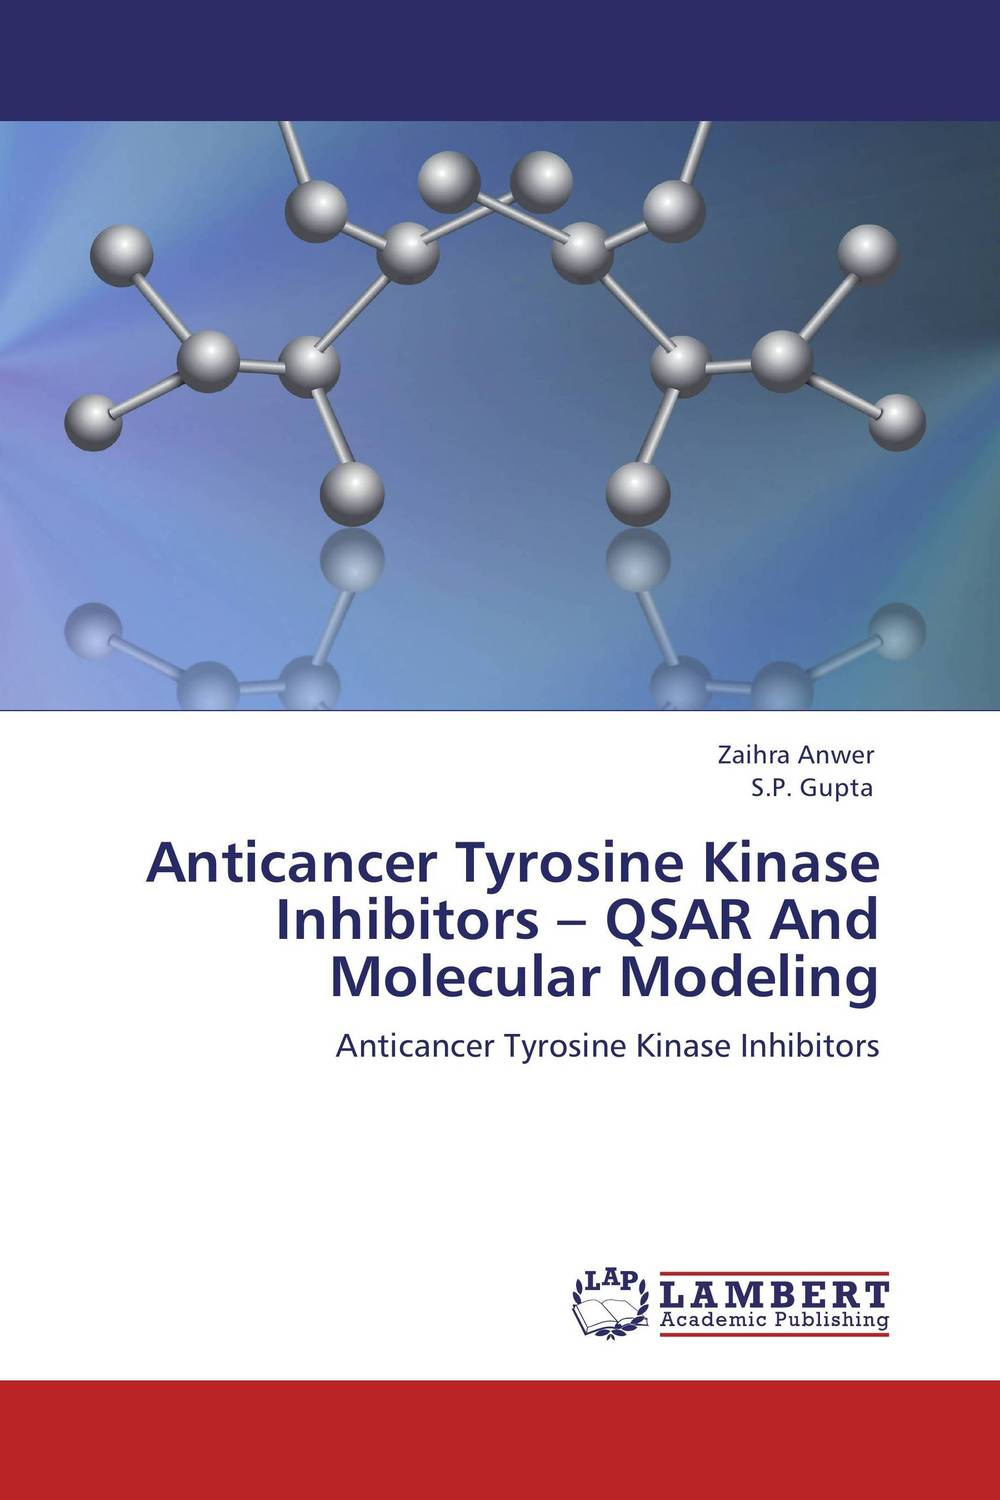 Anticancer Tyrosine Kinase Inhibitors – QSAR And Molecular Modeling rakesh kumar ameta and man singh quatroammonimuplatinate and anticancer chemistry of platinum via dfi